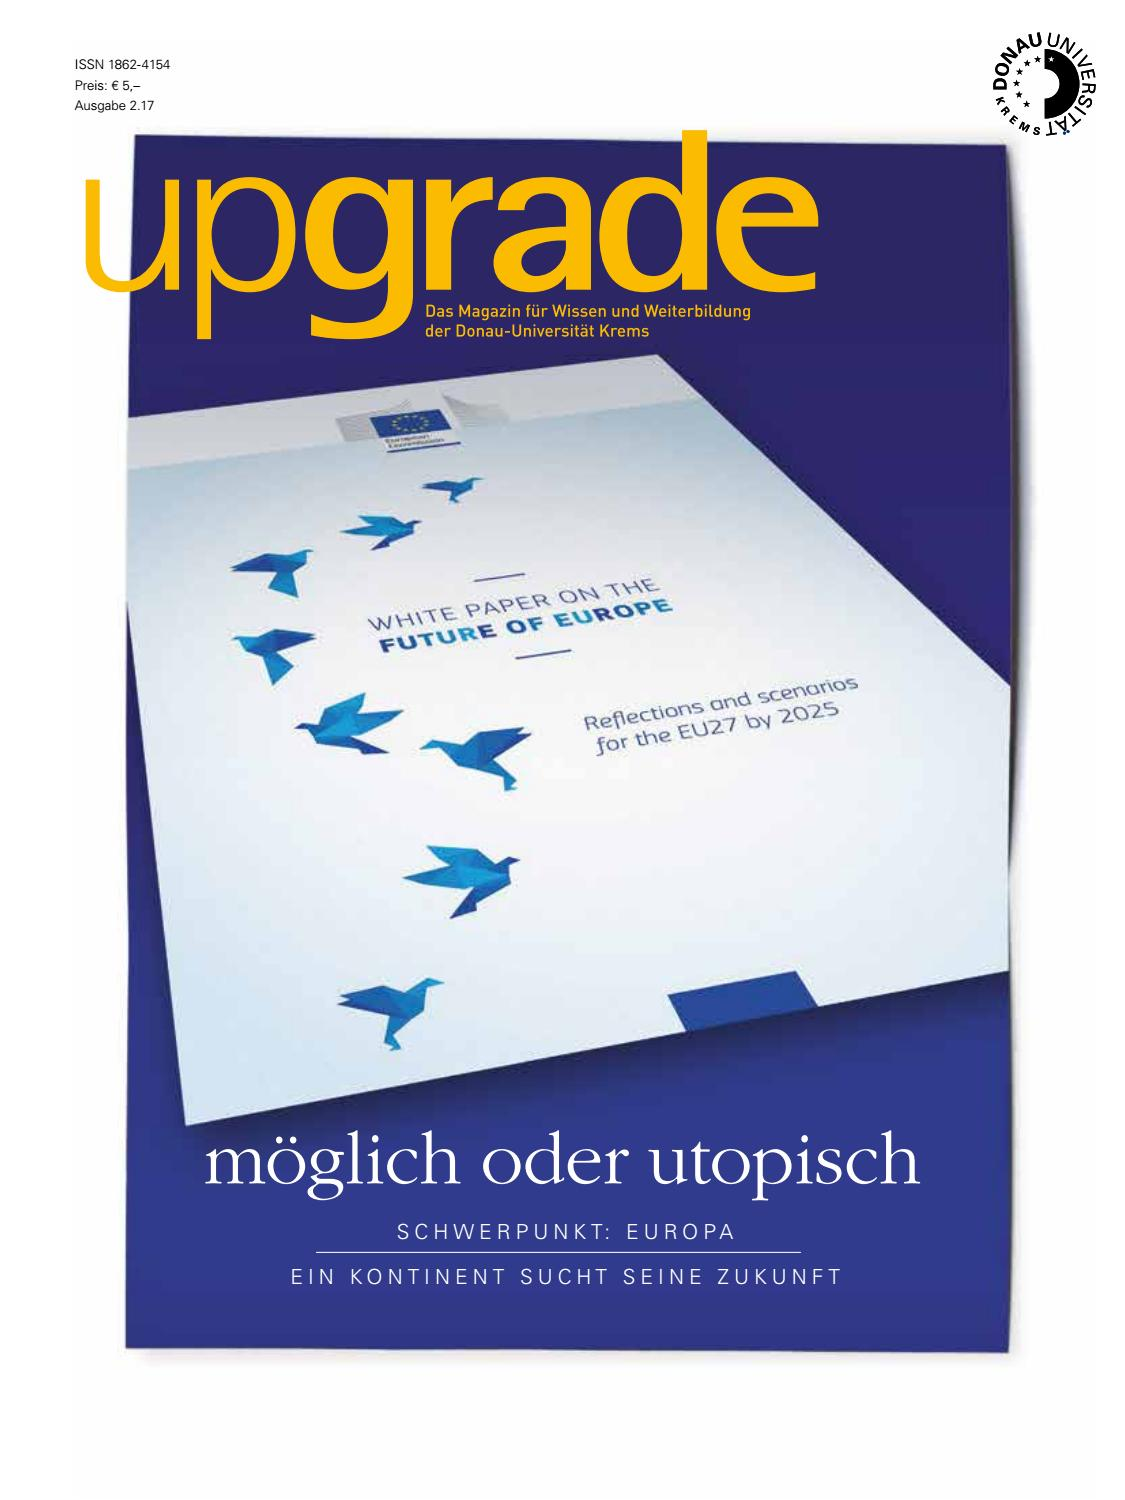 upgrade 2.17 by Donau-Universität Krems - issuu